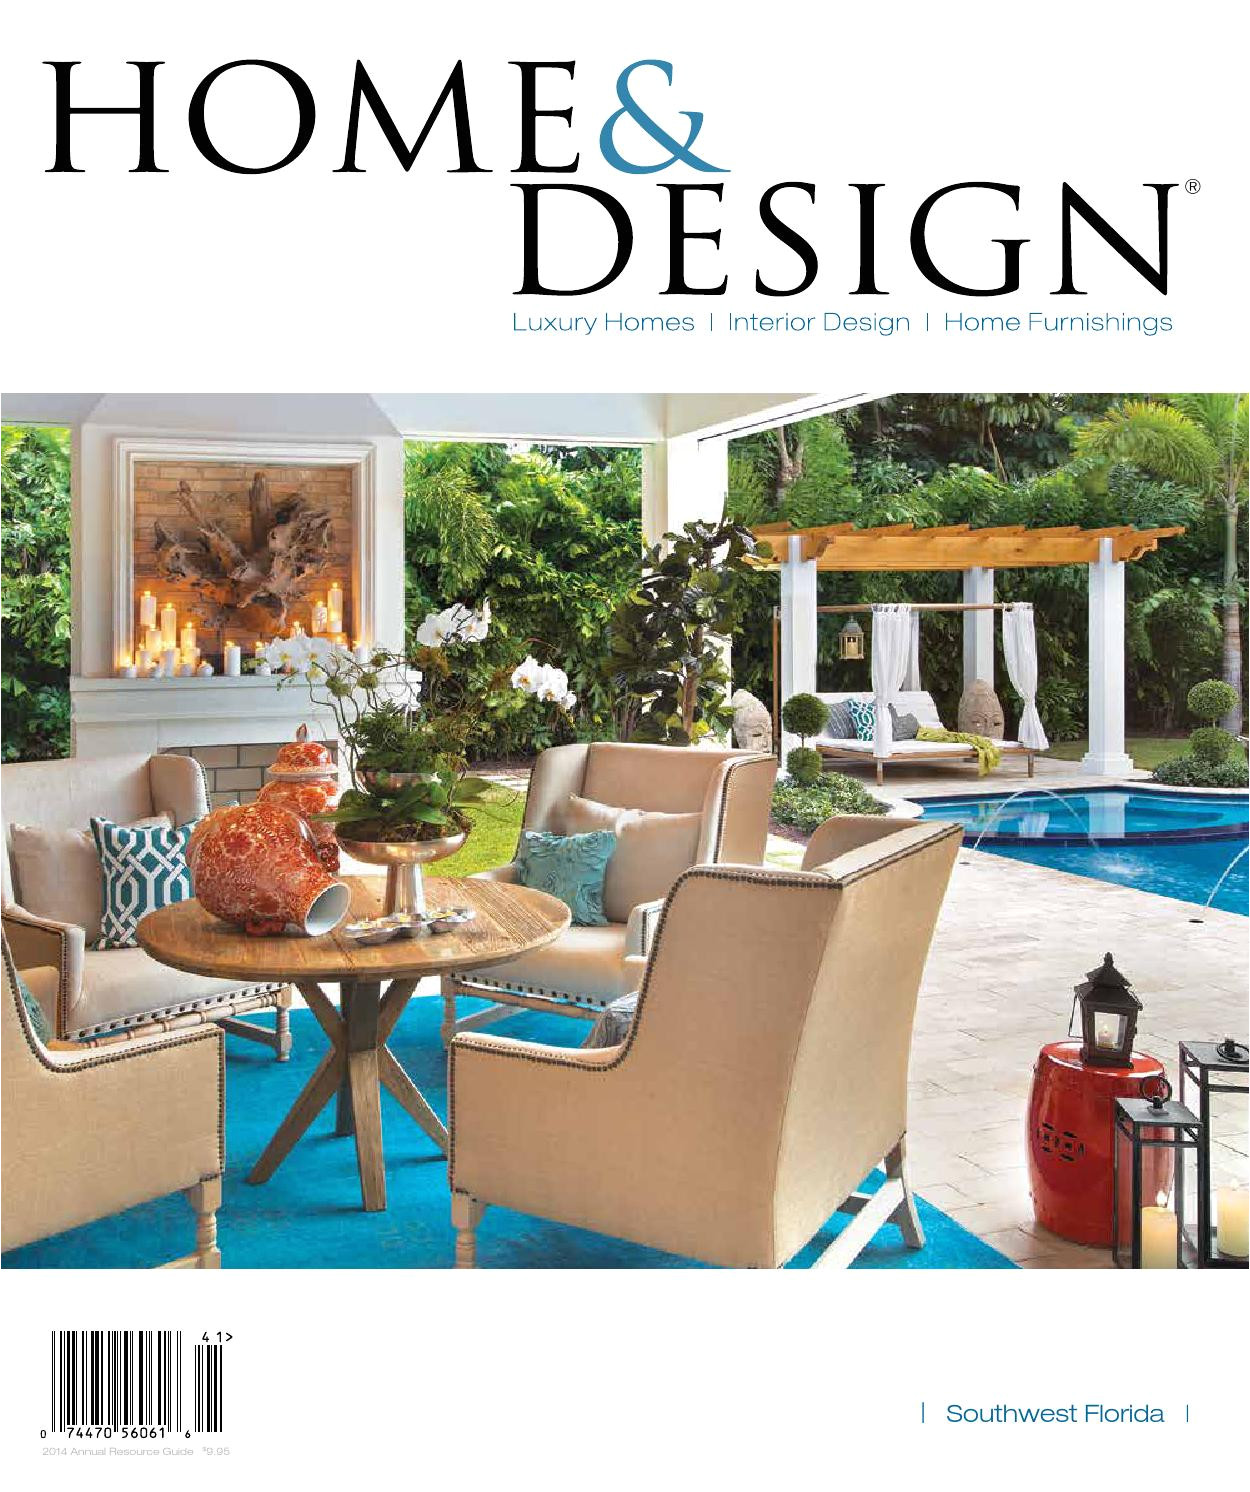 home design magazine annual resource guide 2014 southwest florida edition by anthony spano issuu